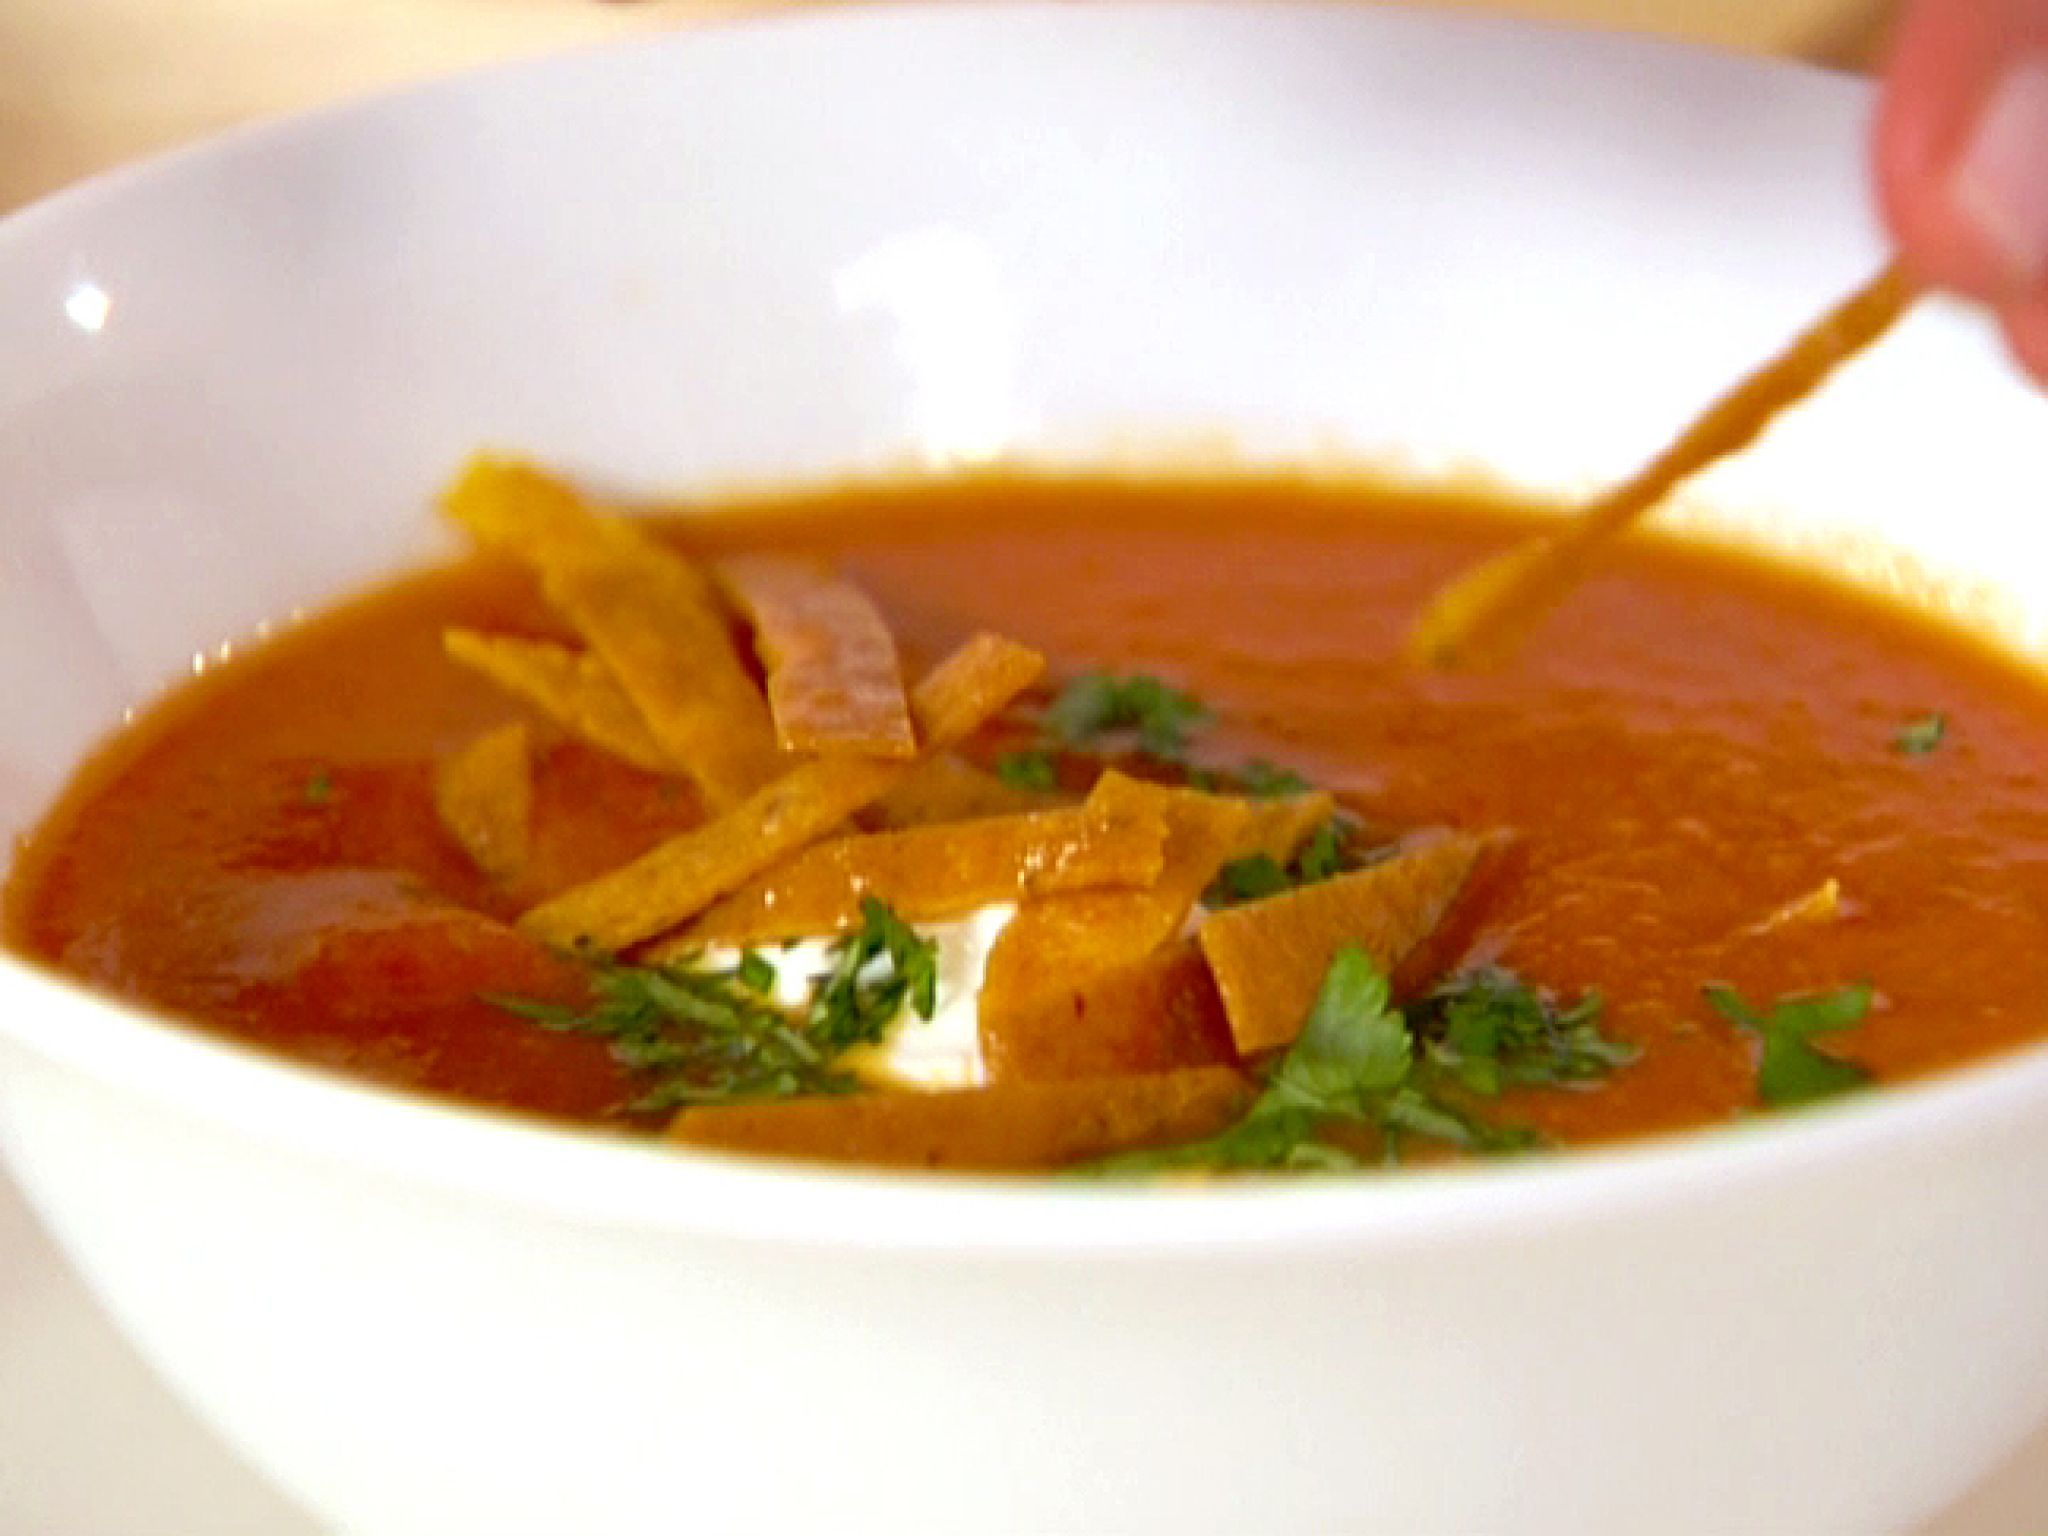 Healthy soup recipes food network tortilla soup deep frying and tomato tortilla soup recipe by ellie krieger food network 160 mg of sodium per serving leave out the added salt and be sure to use low sodium chicken forumfinder Images